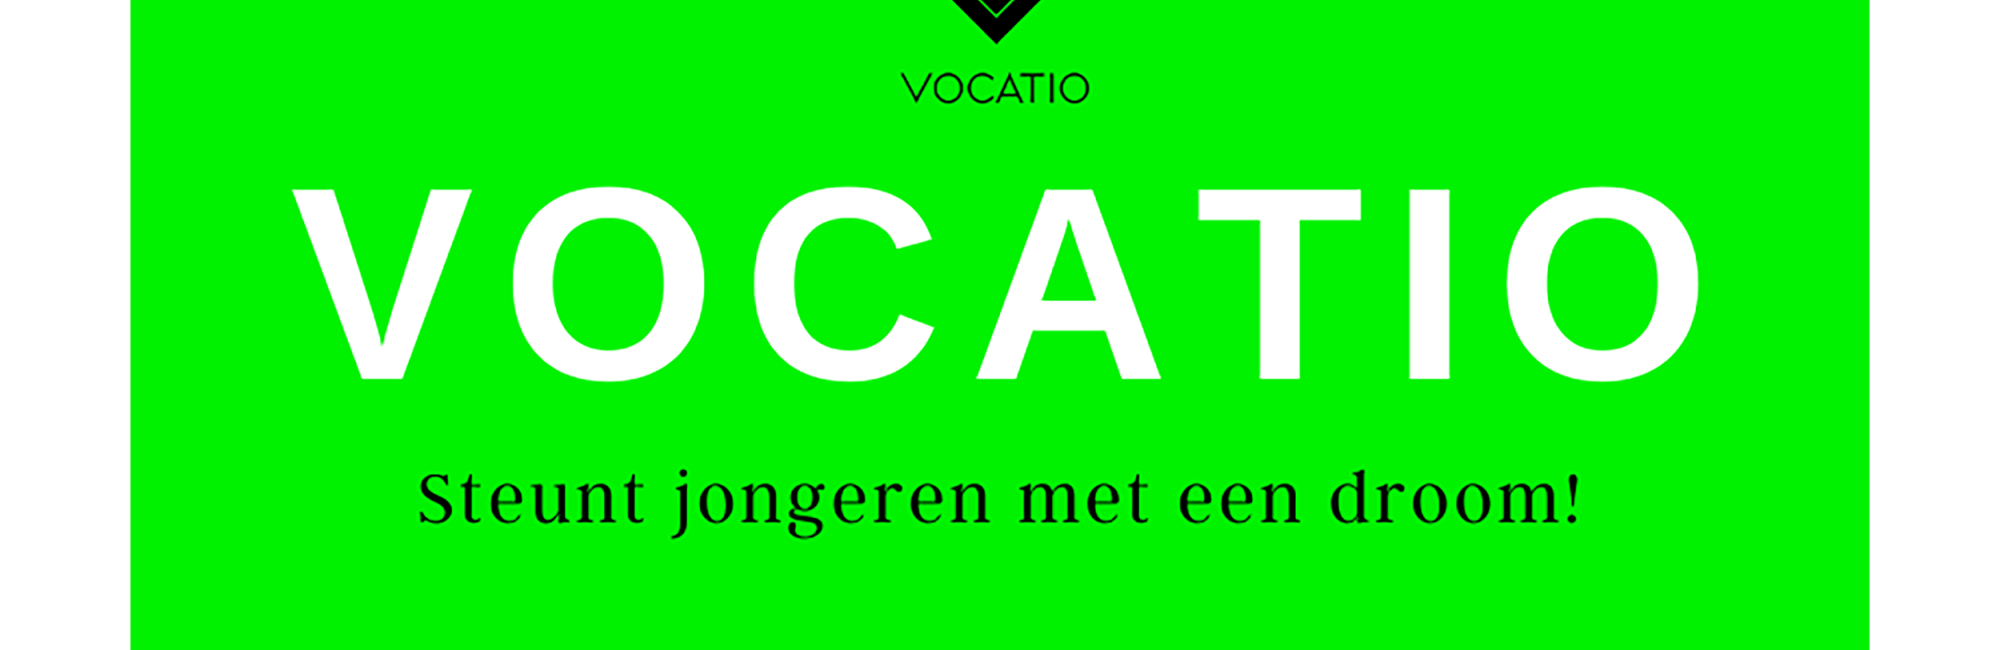 Vocatio